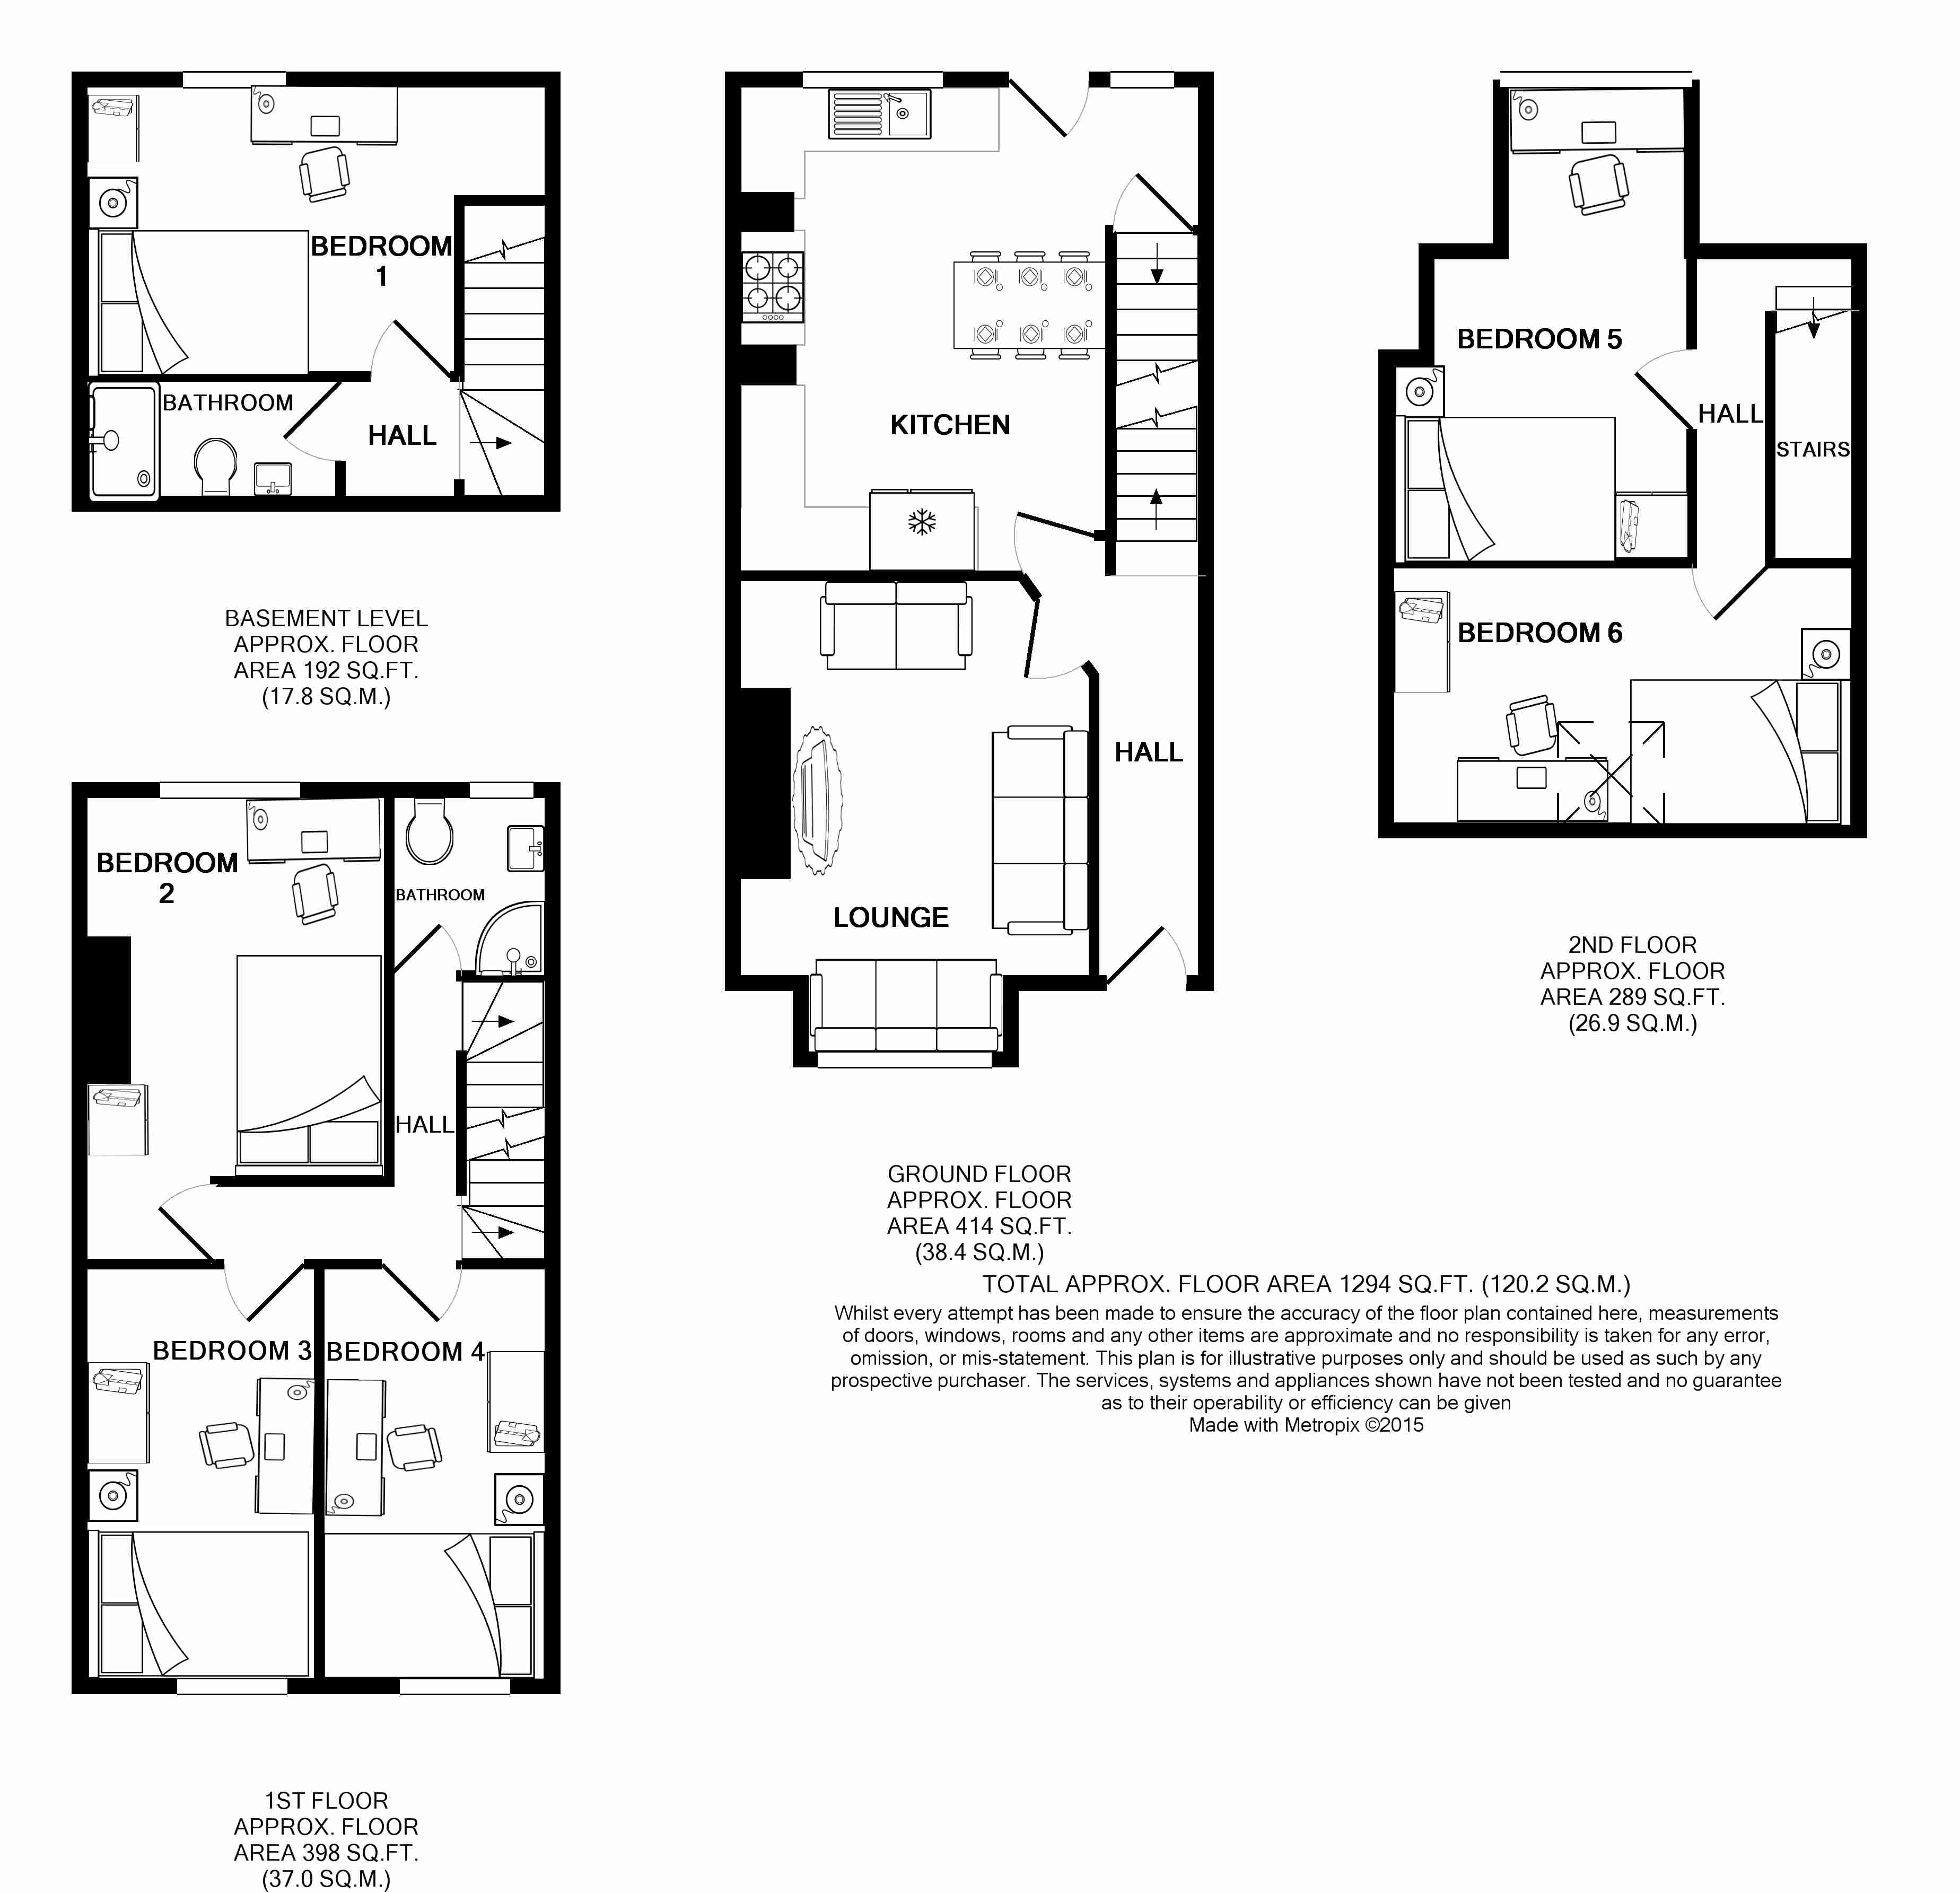 25 Hessle Terrace Floorplans